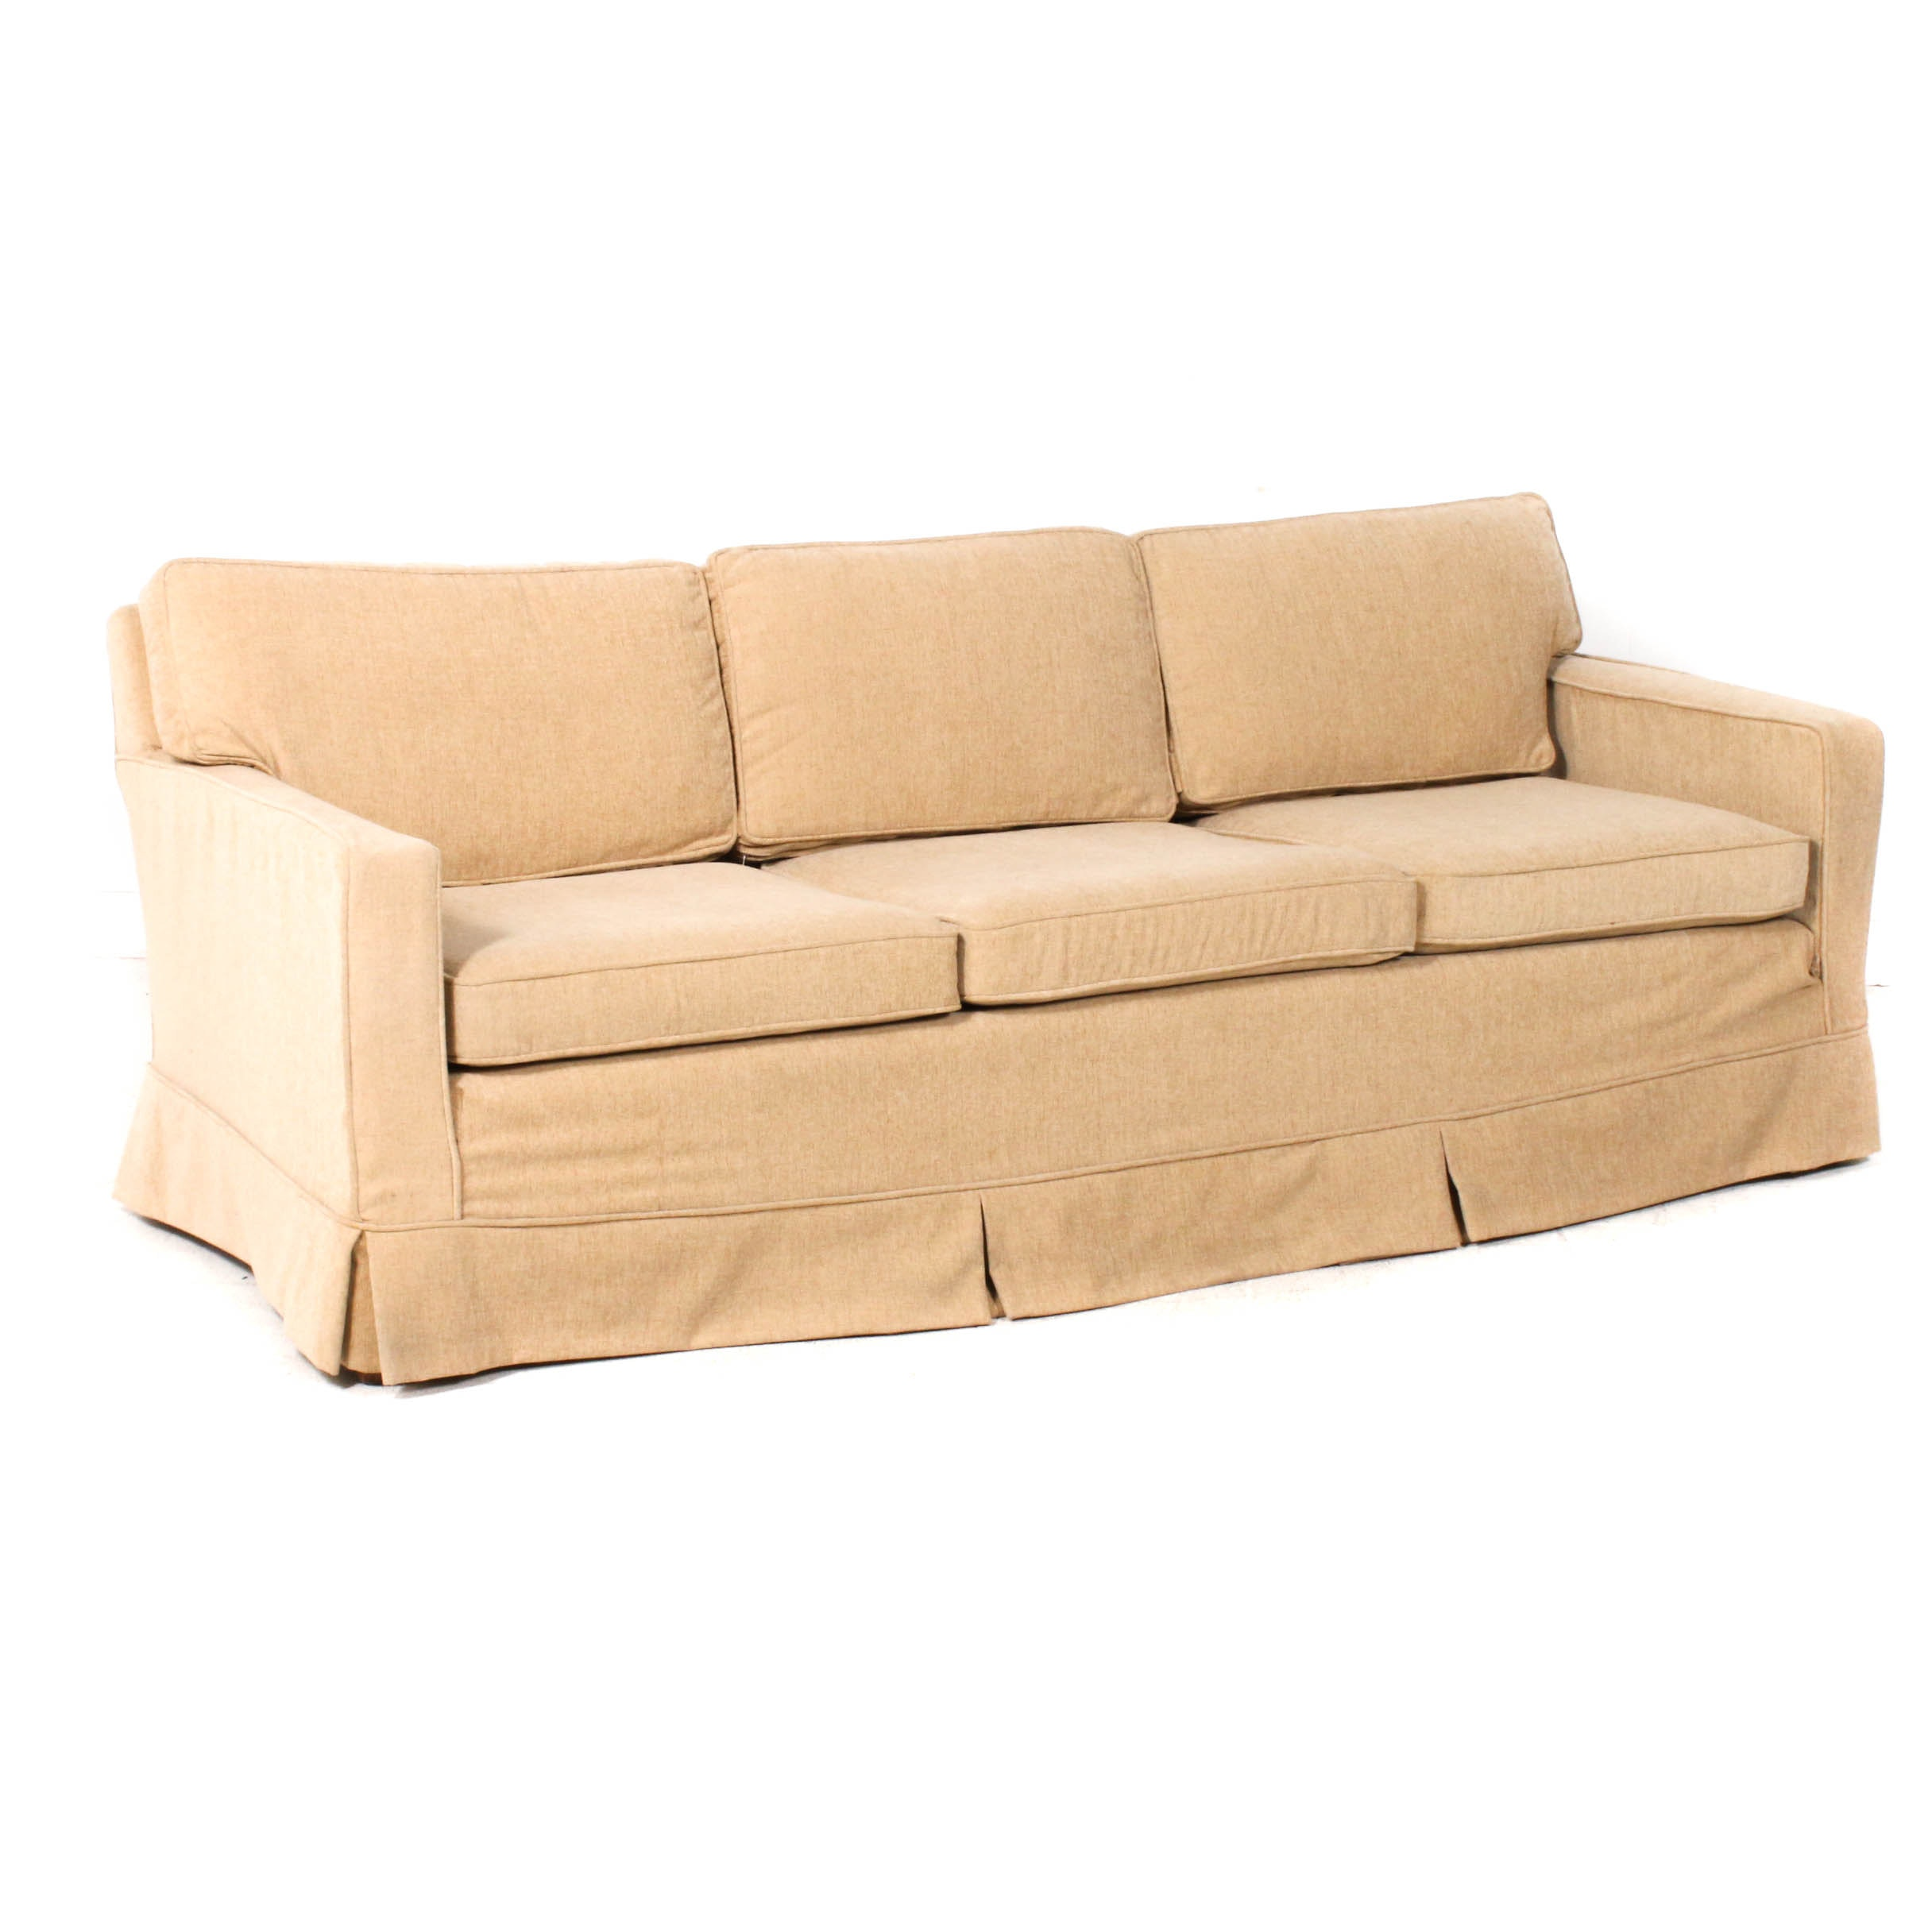 Carter Furniture Upholstered Wood Frame Sofa, Mid 20th Century